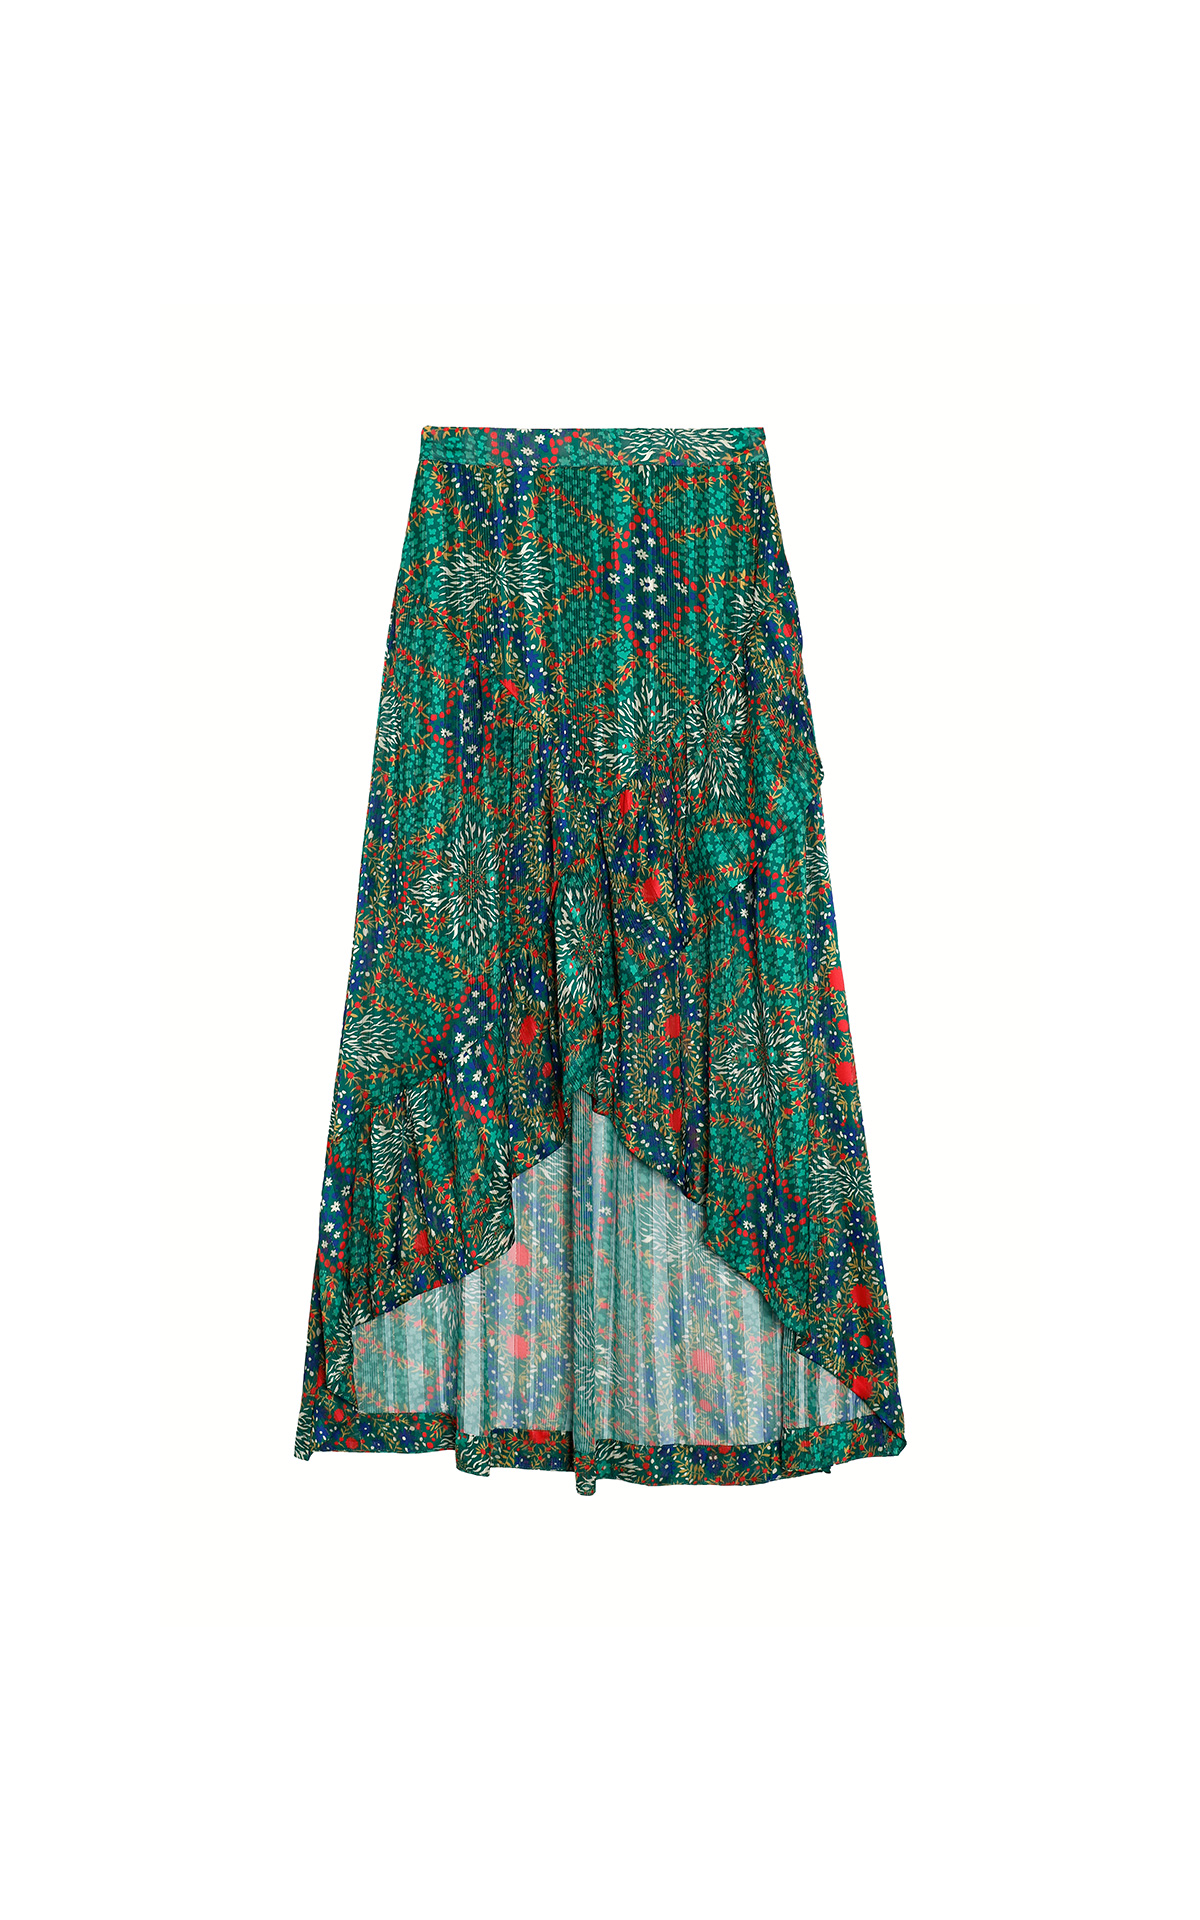 La Vallée Village Ba&sh Hall skirt